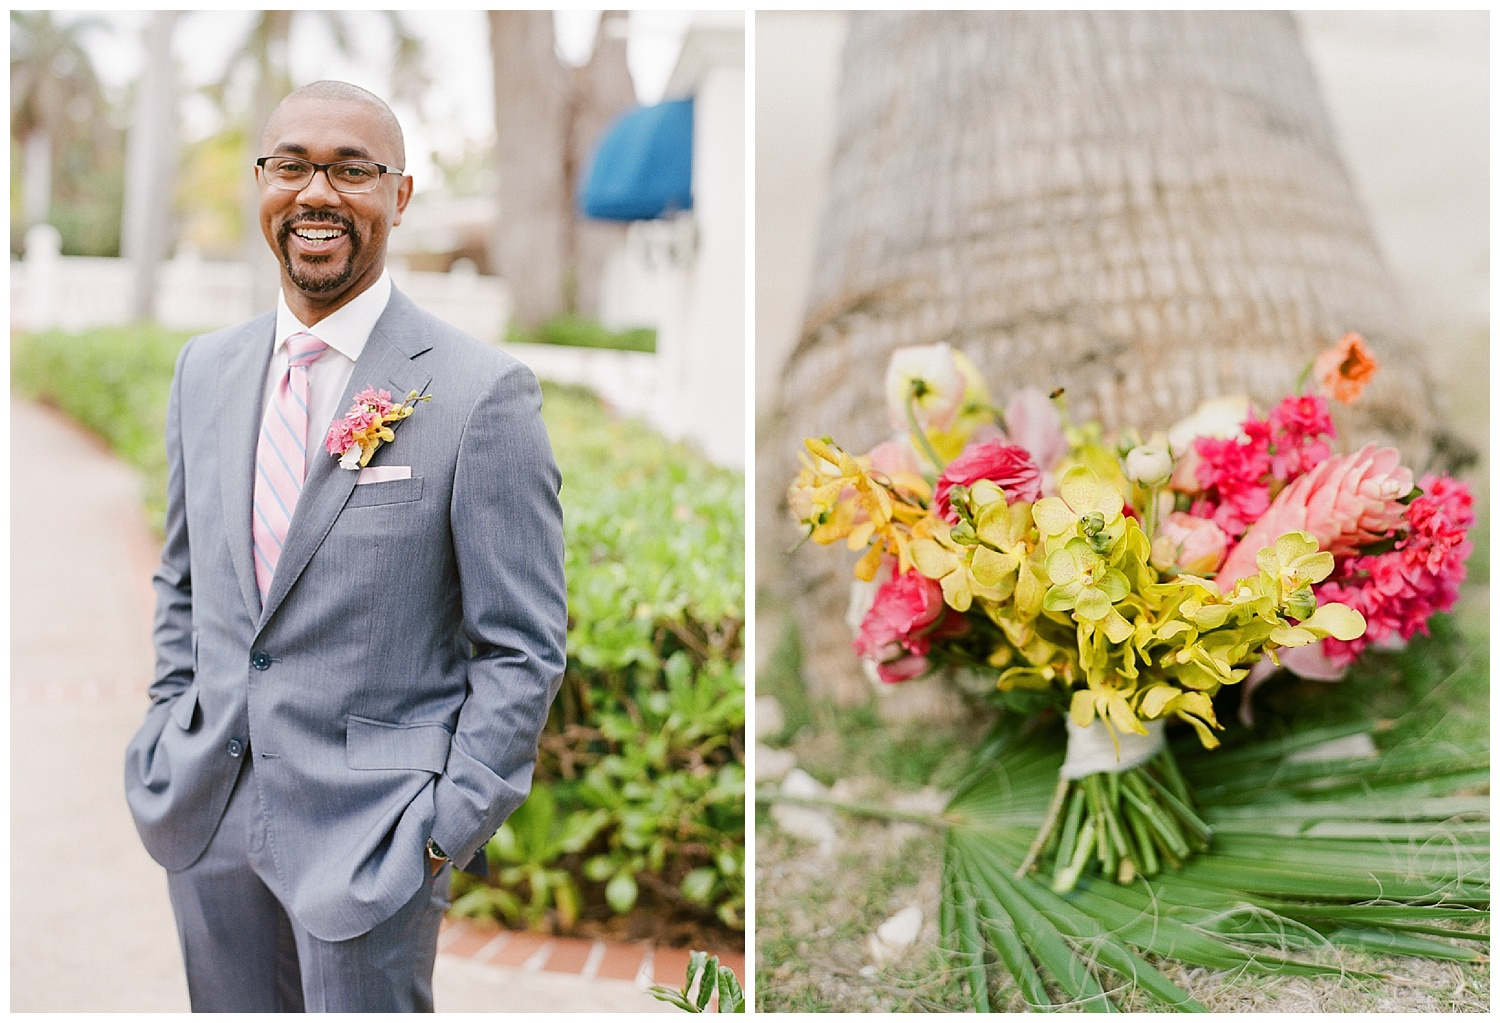 Local tropical blooms - pink, yellow, orange orchids made up ceremony and bouquet florals; Sylvie Gil Photography